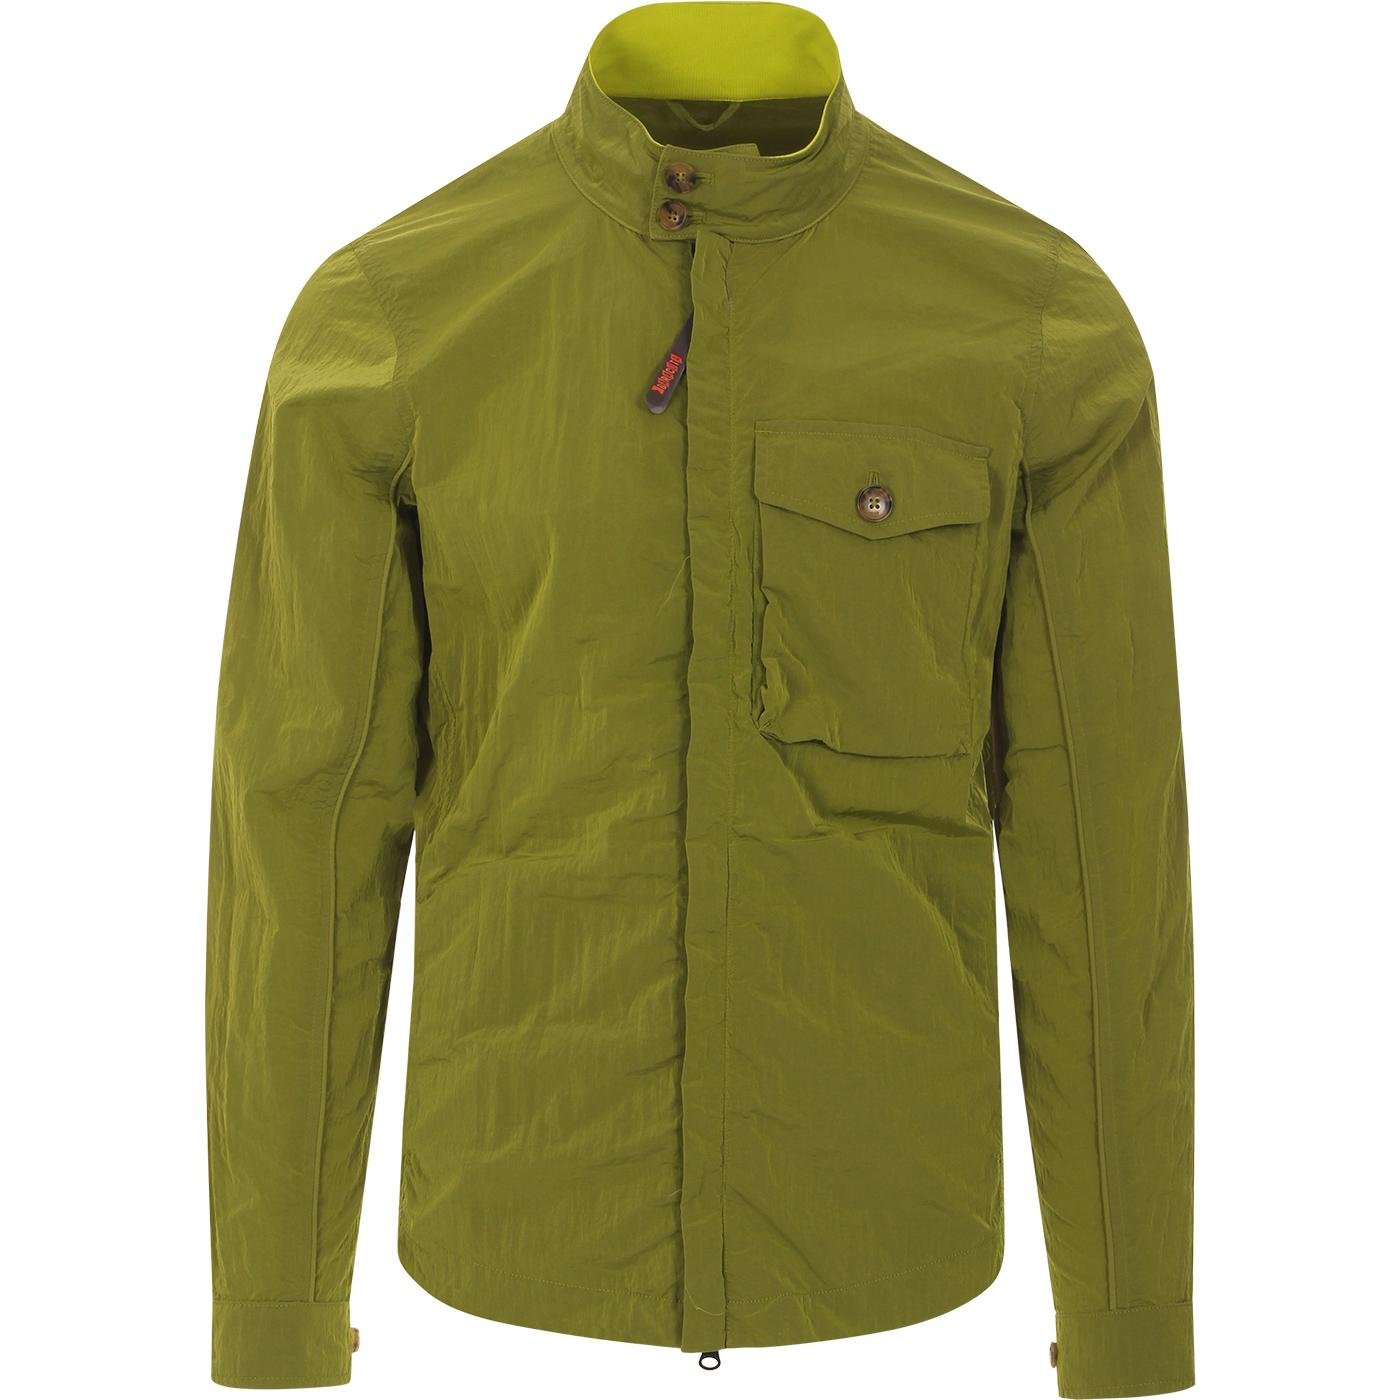 BARACUTA Nylon Garment Dye Harrington Overshirt A